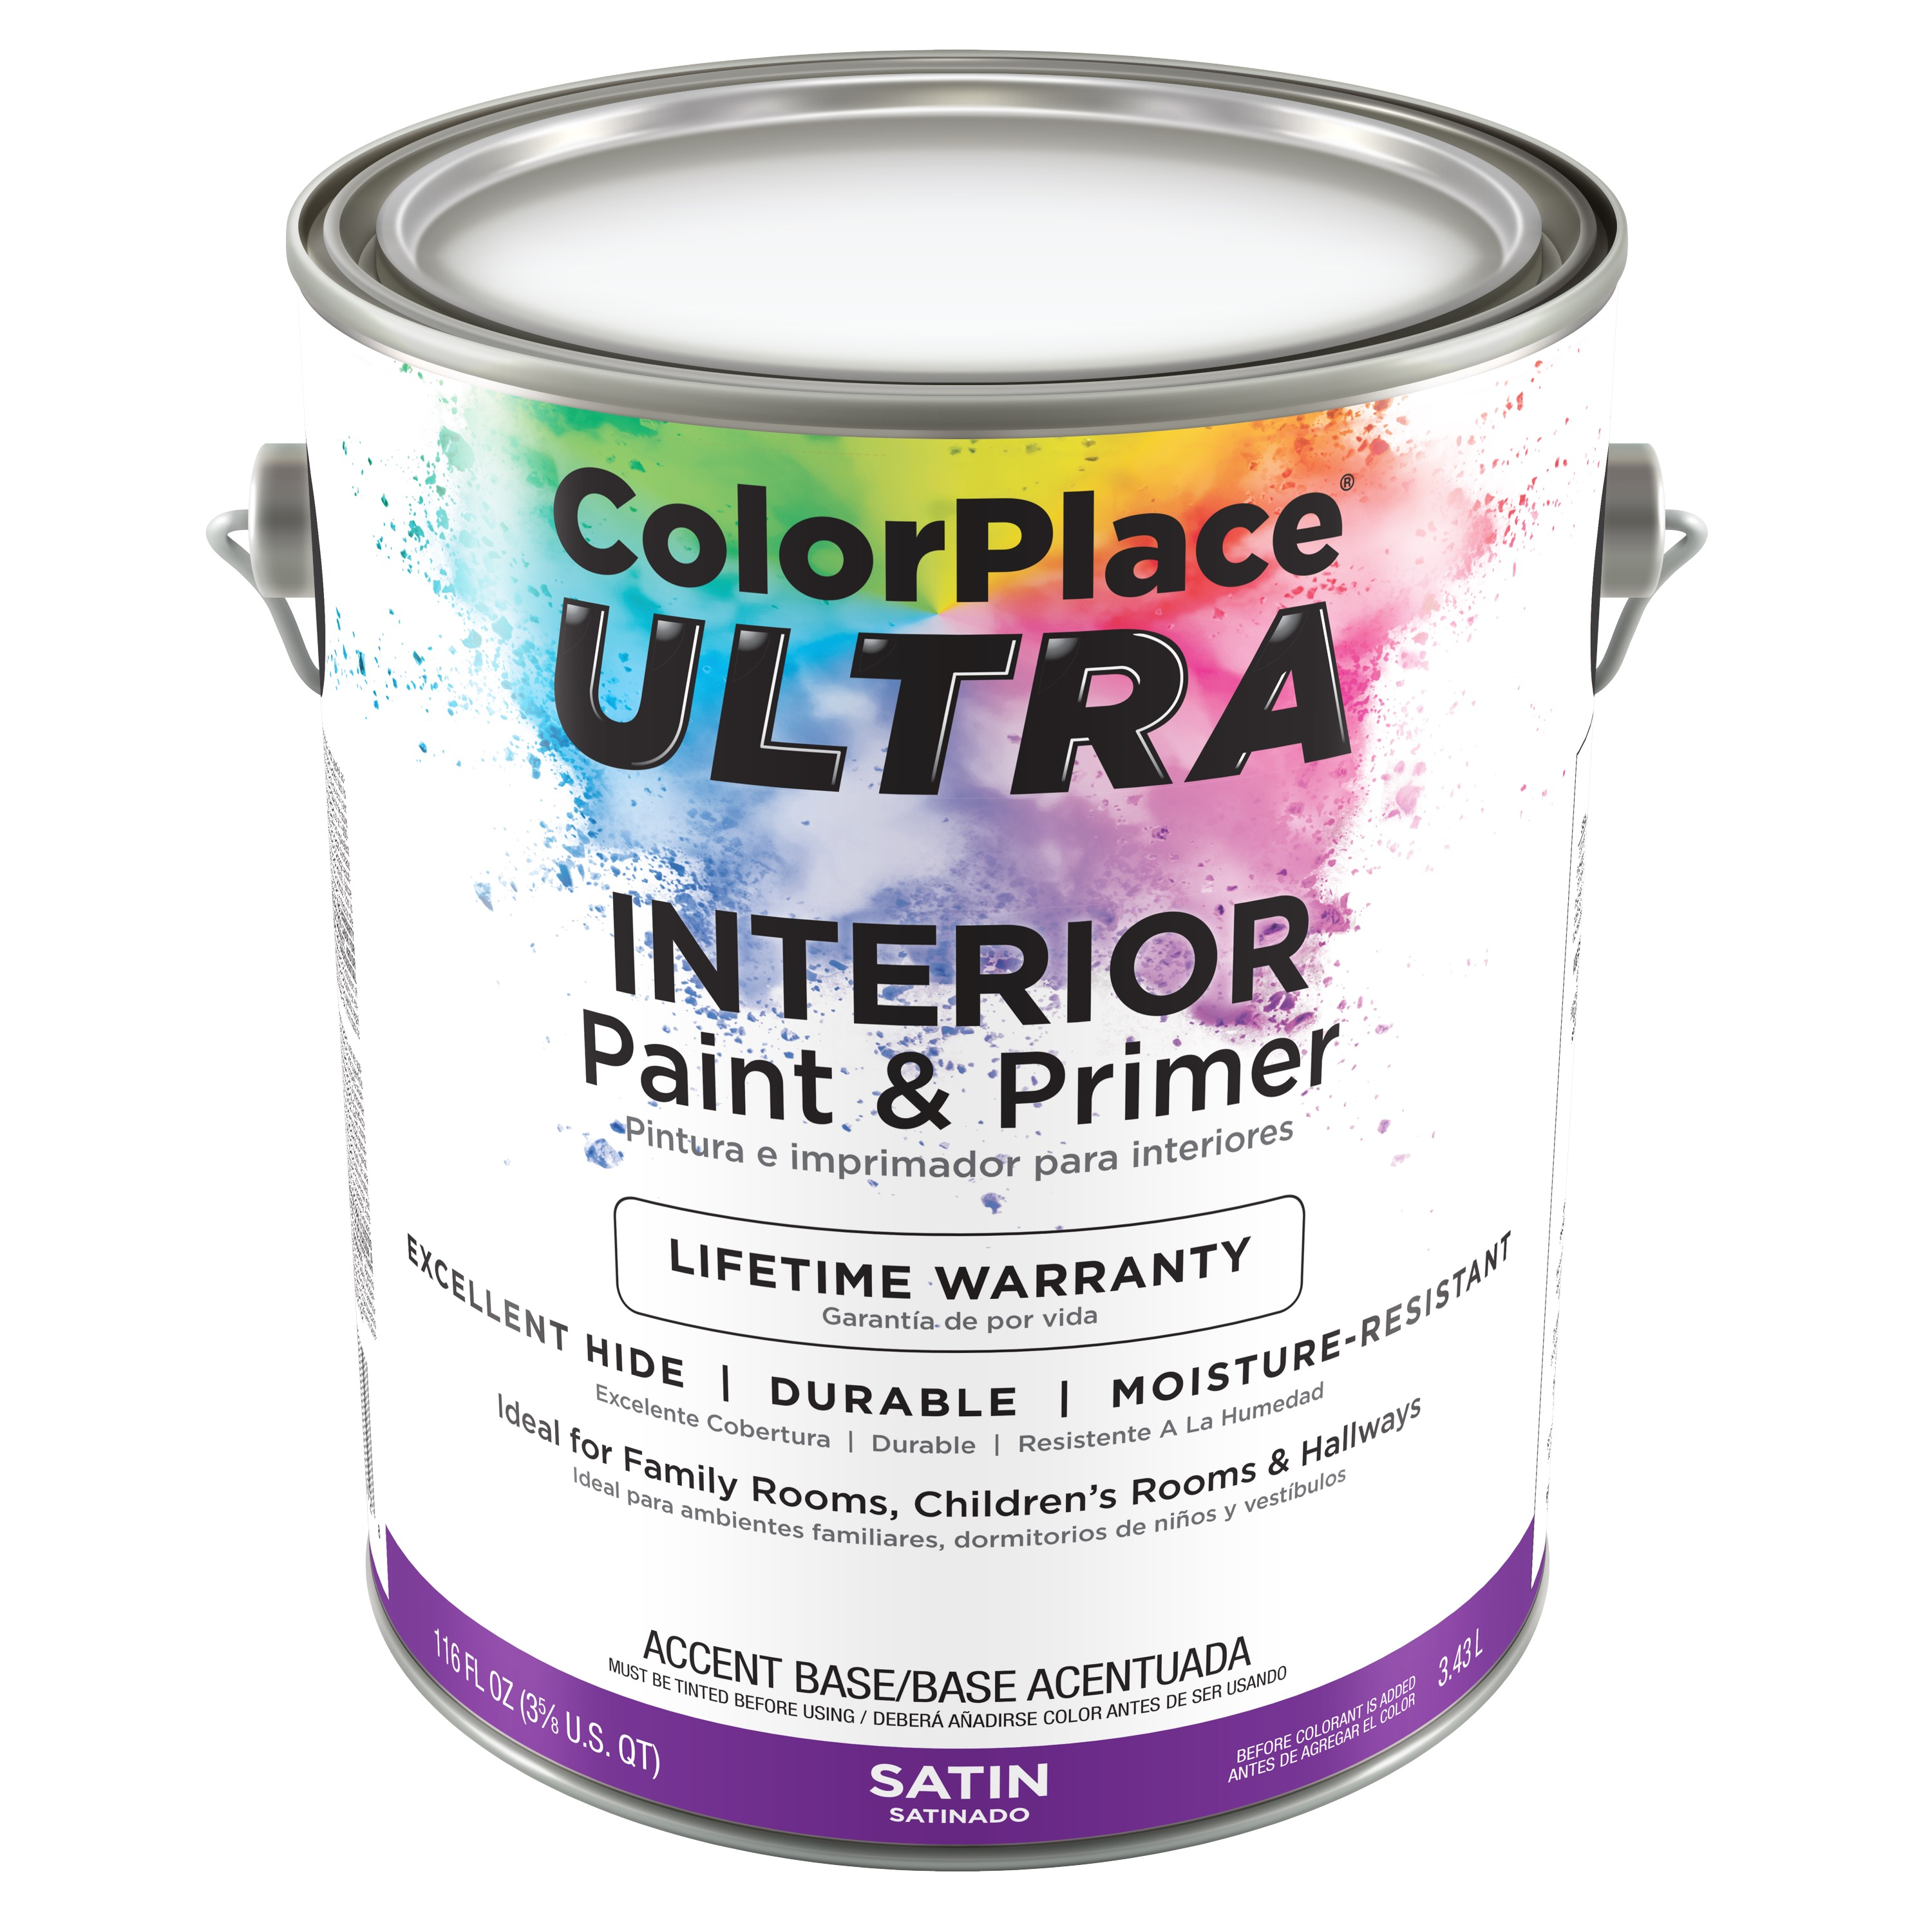 Color Place Ultra Satin Interior Paint & Primer Accent Base 1-Gal